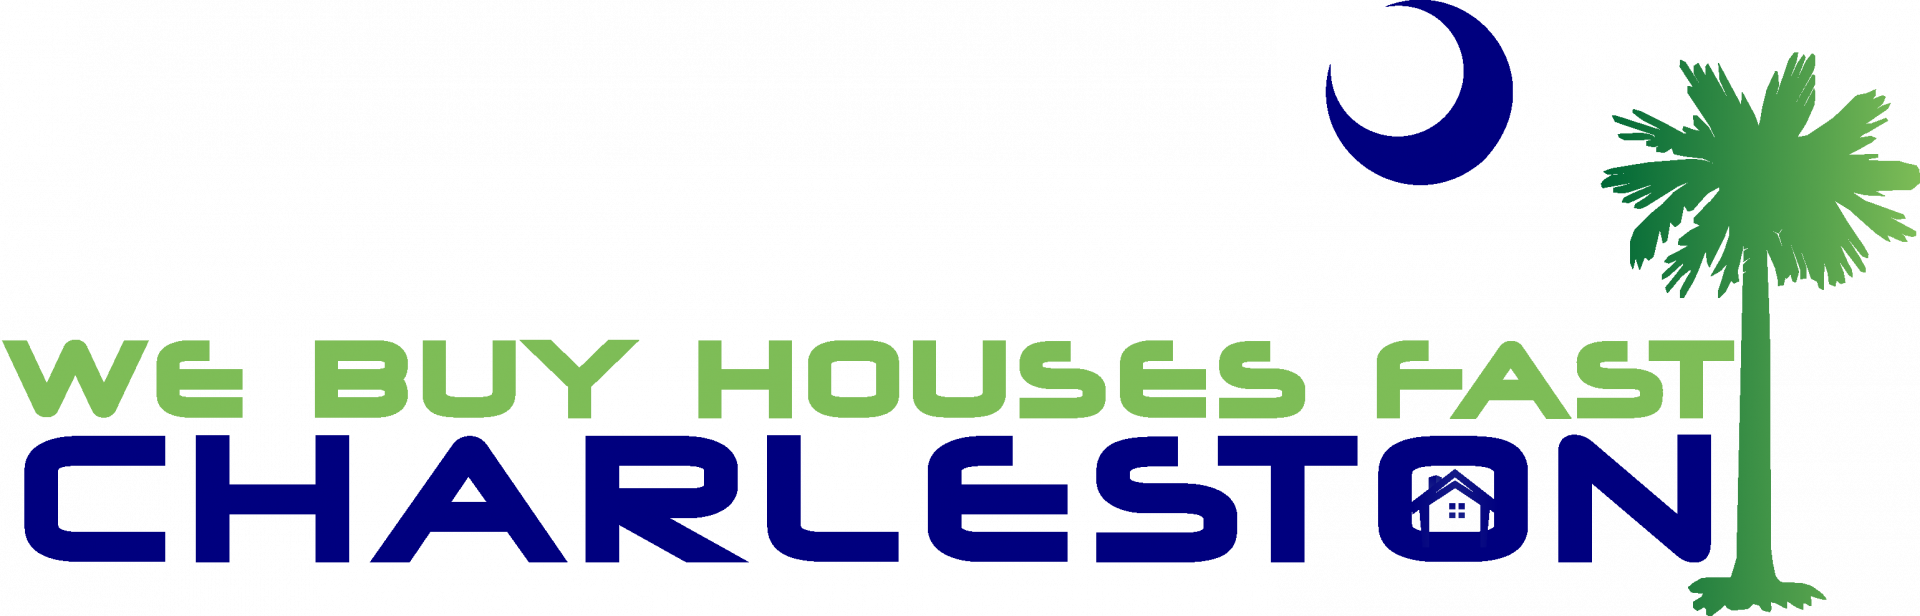 We Buy Houses Fast Charleston logo